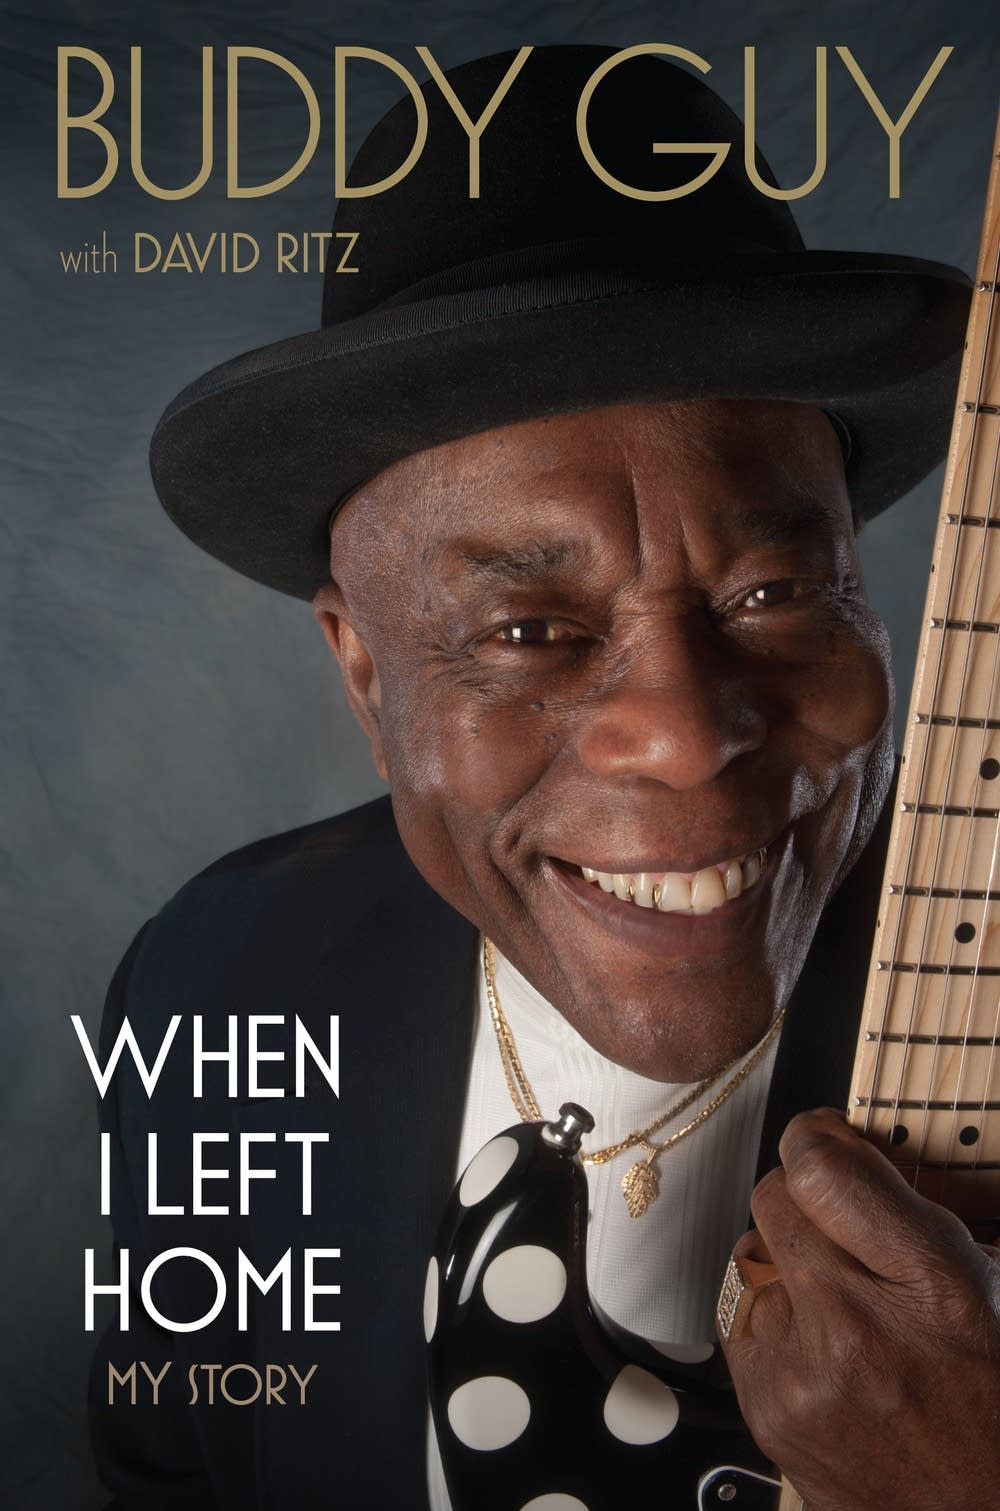 'When I Left Home' by Buddy Guy with David Ritz